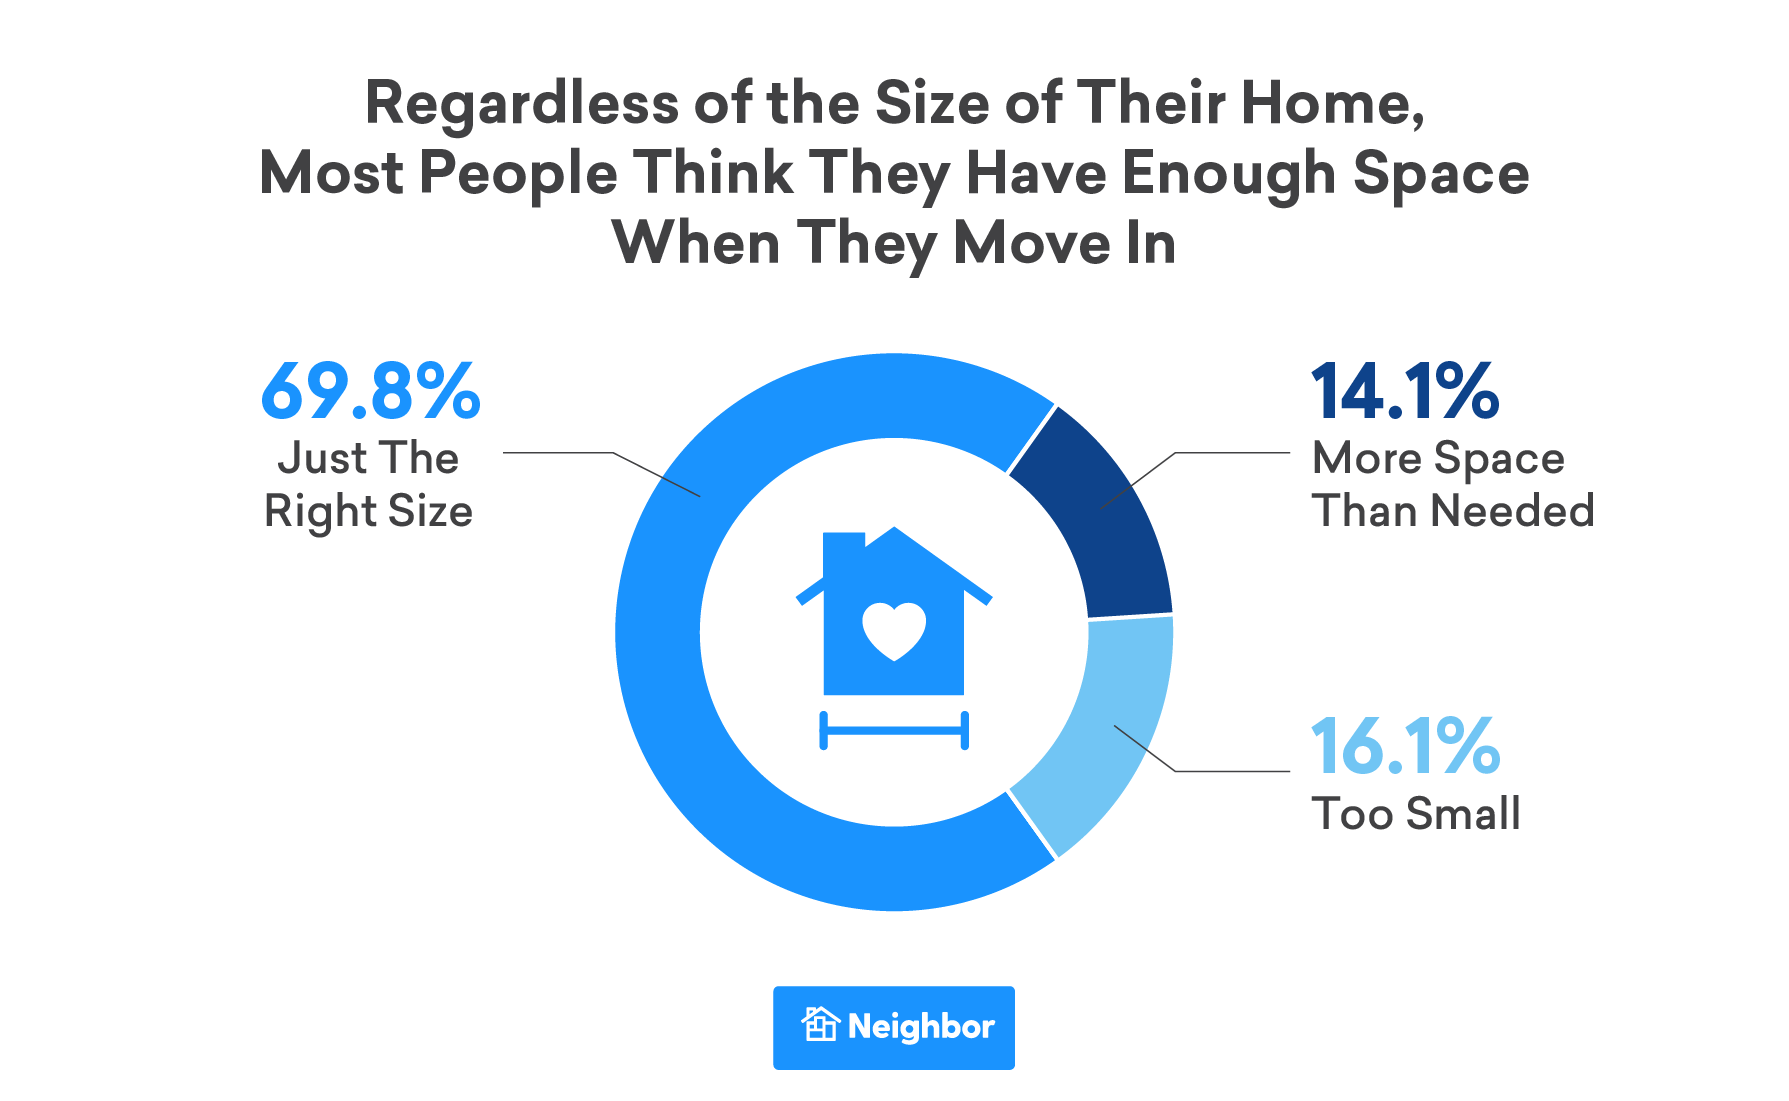 Regardless of the Size of their Home, Most People Think They Have Enough Space When they Move in